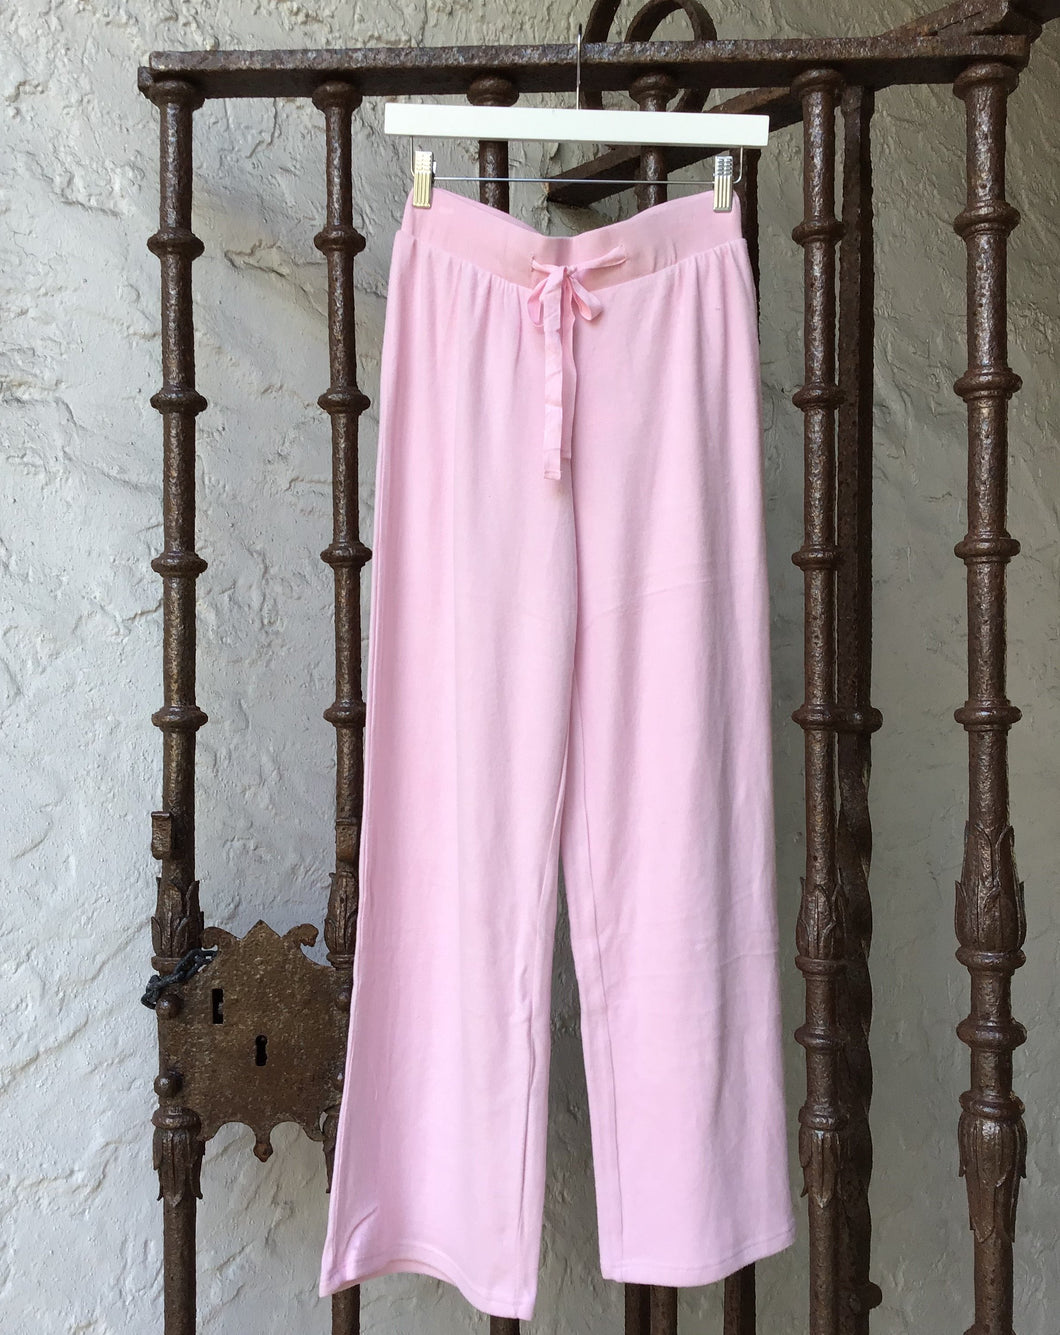 Athloro Flared Pant - Pink